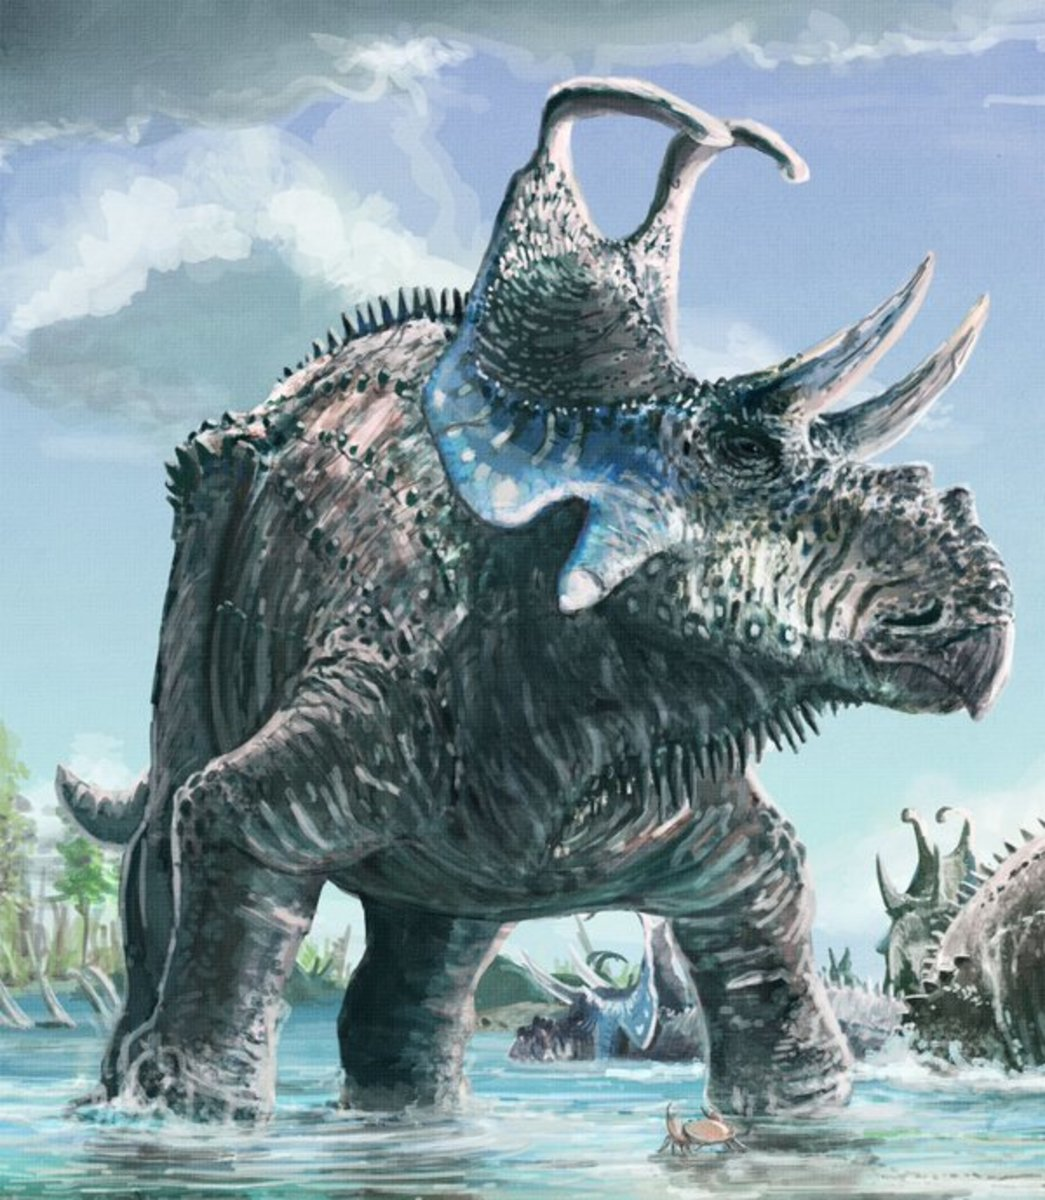 Machairoceratops as depicted by Mark Witton.